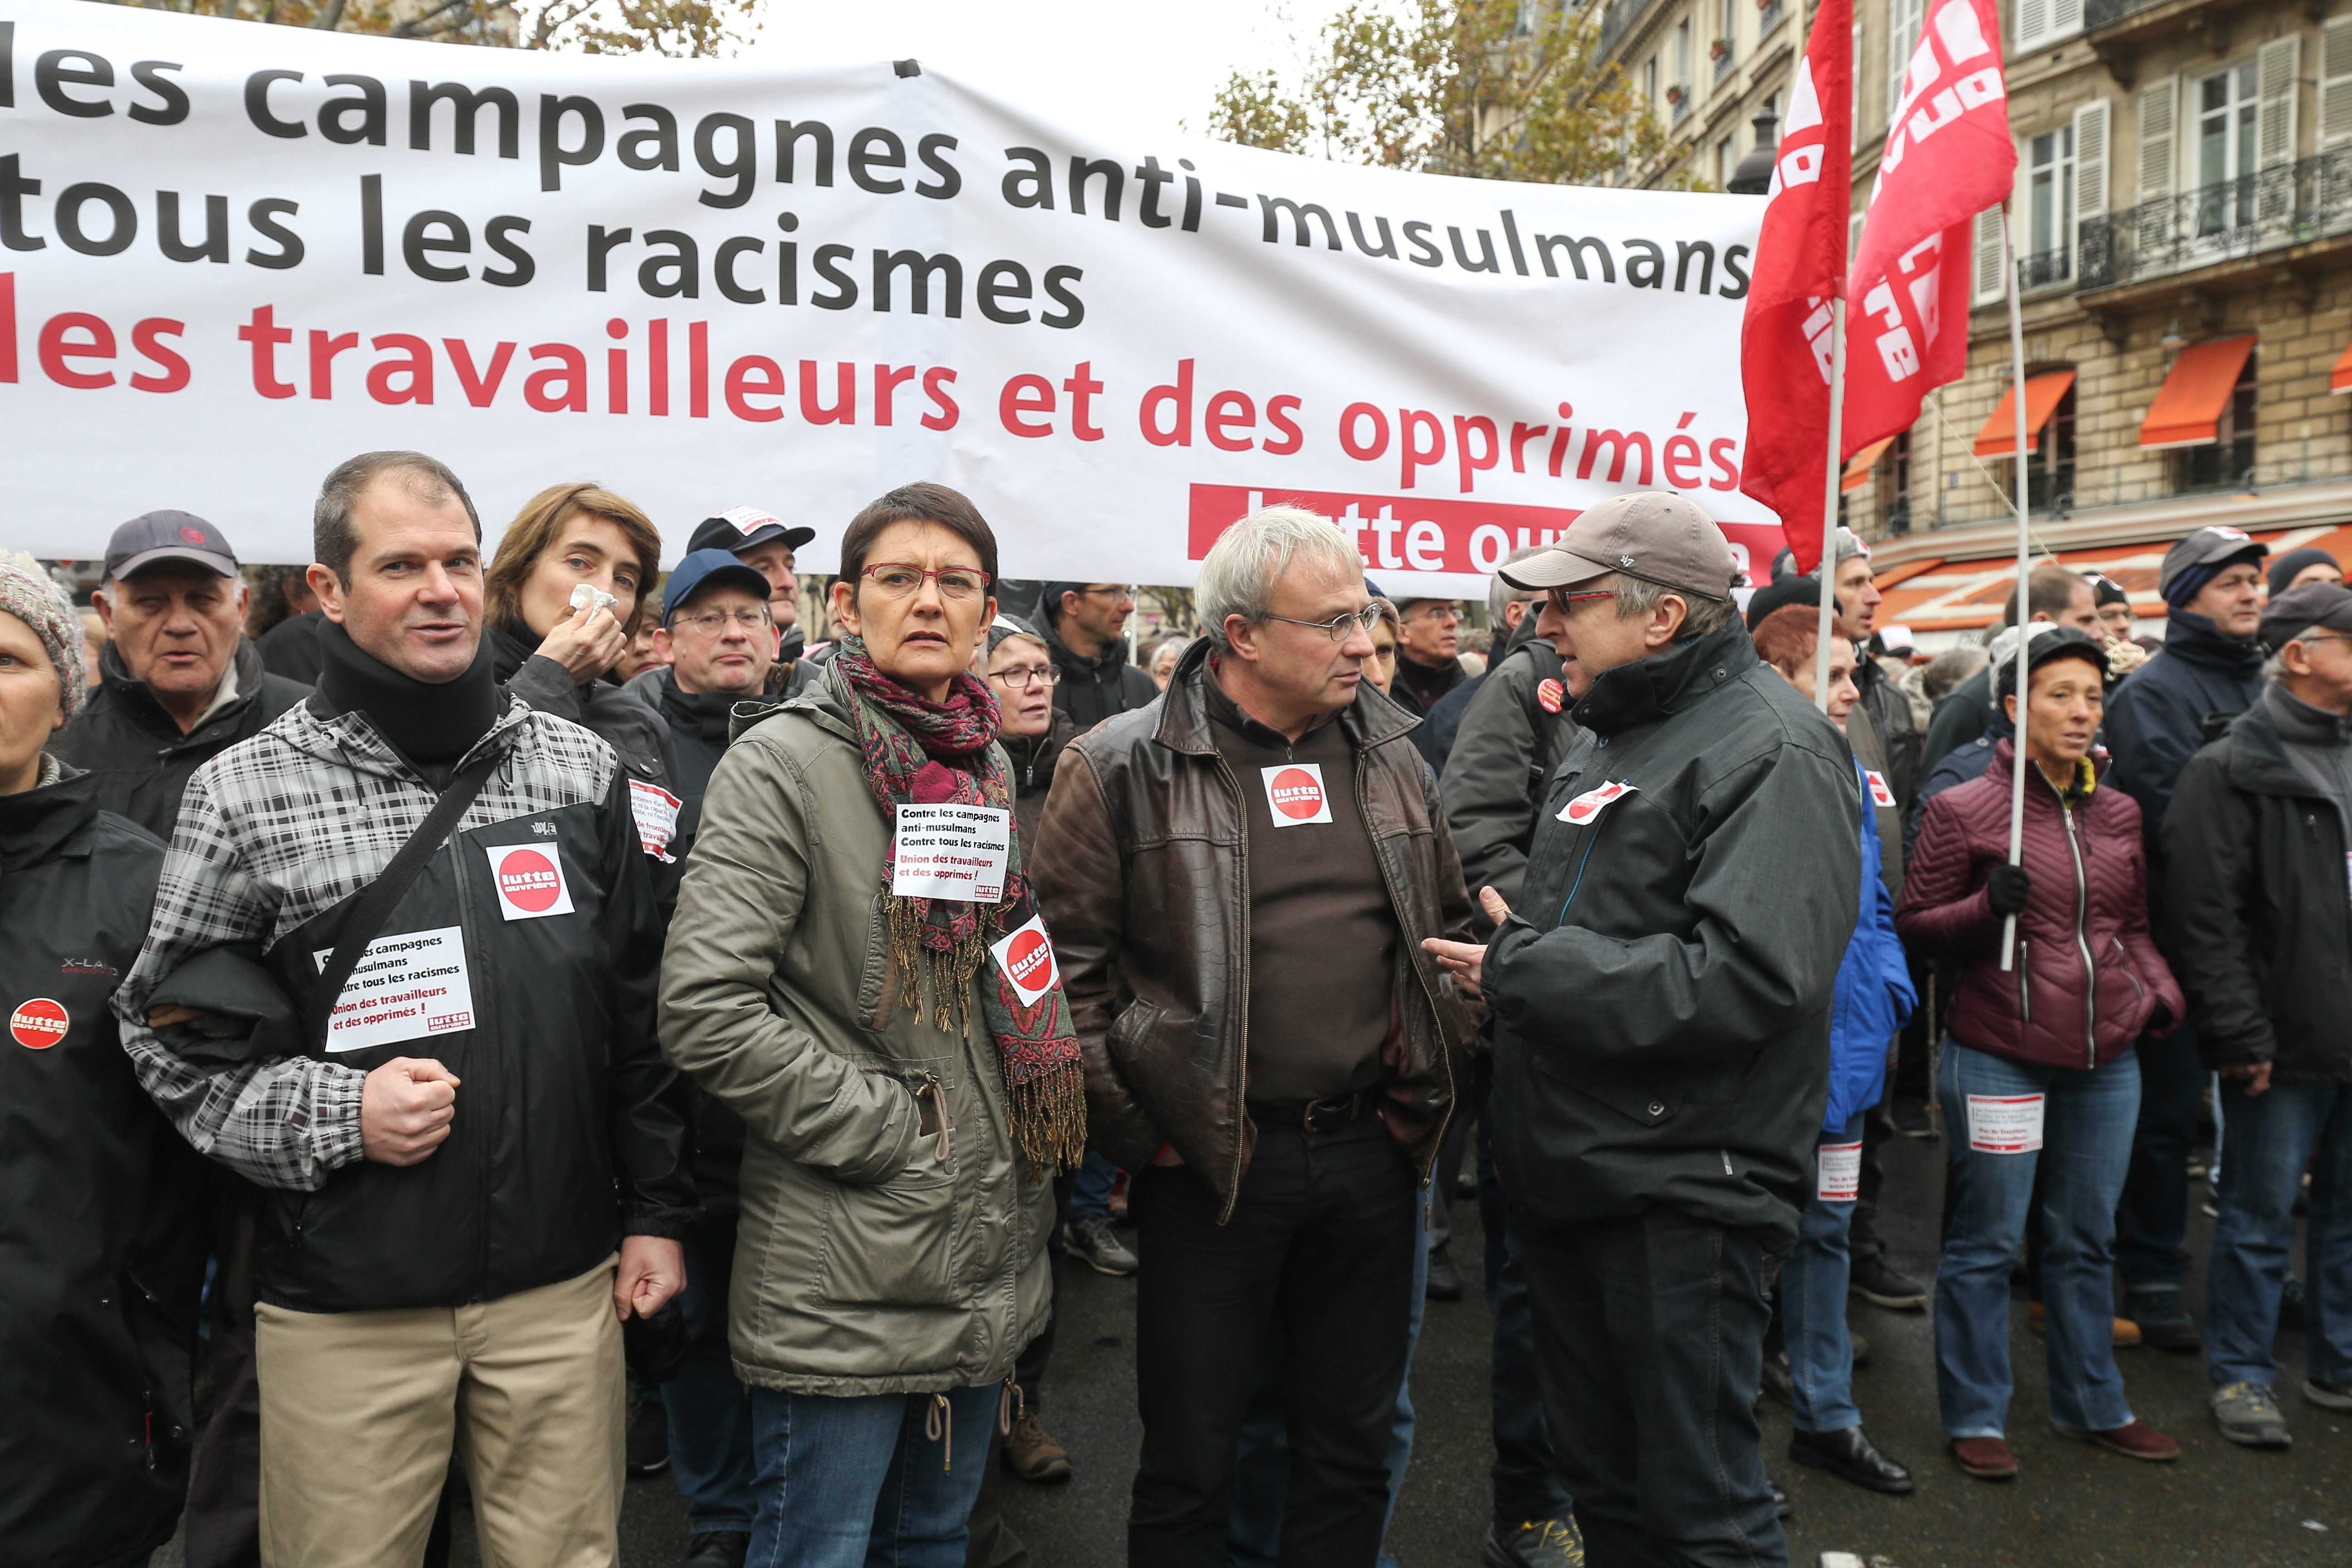 Nathalie Arthaud (6L), speaker for the far-left Lutte ouvriere (LO) and former candidate for the European election Jean-Pierre Mercier (7L) take part in a march near the Gare du Nord, in Paris, on November 10, 2019, to protest against Islamophobia, at the